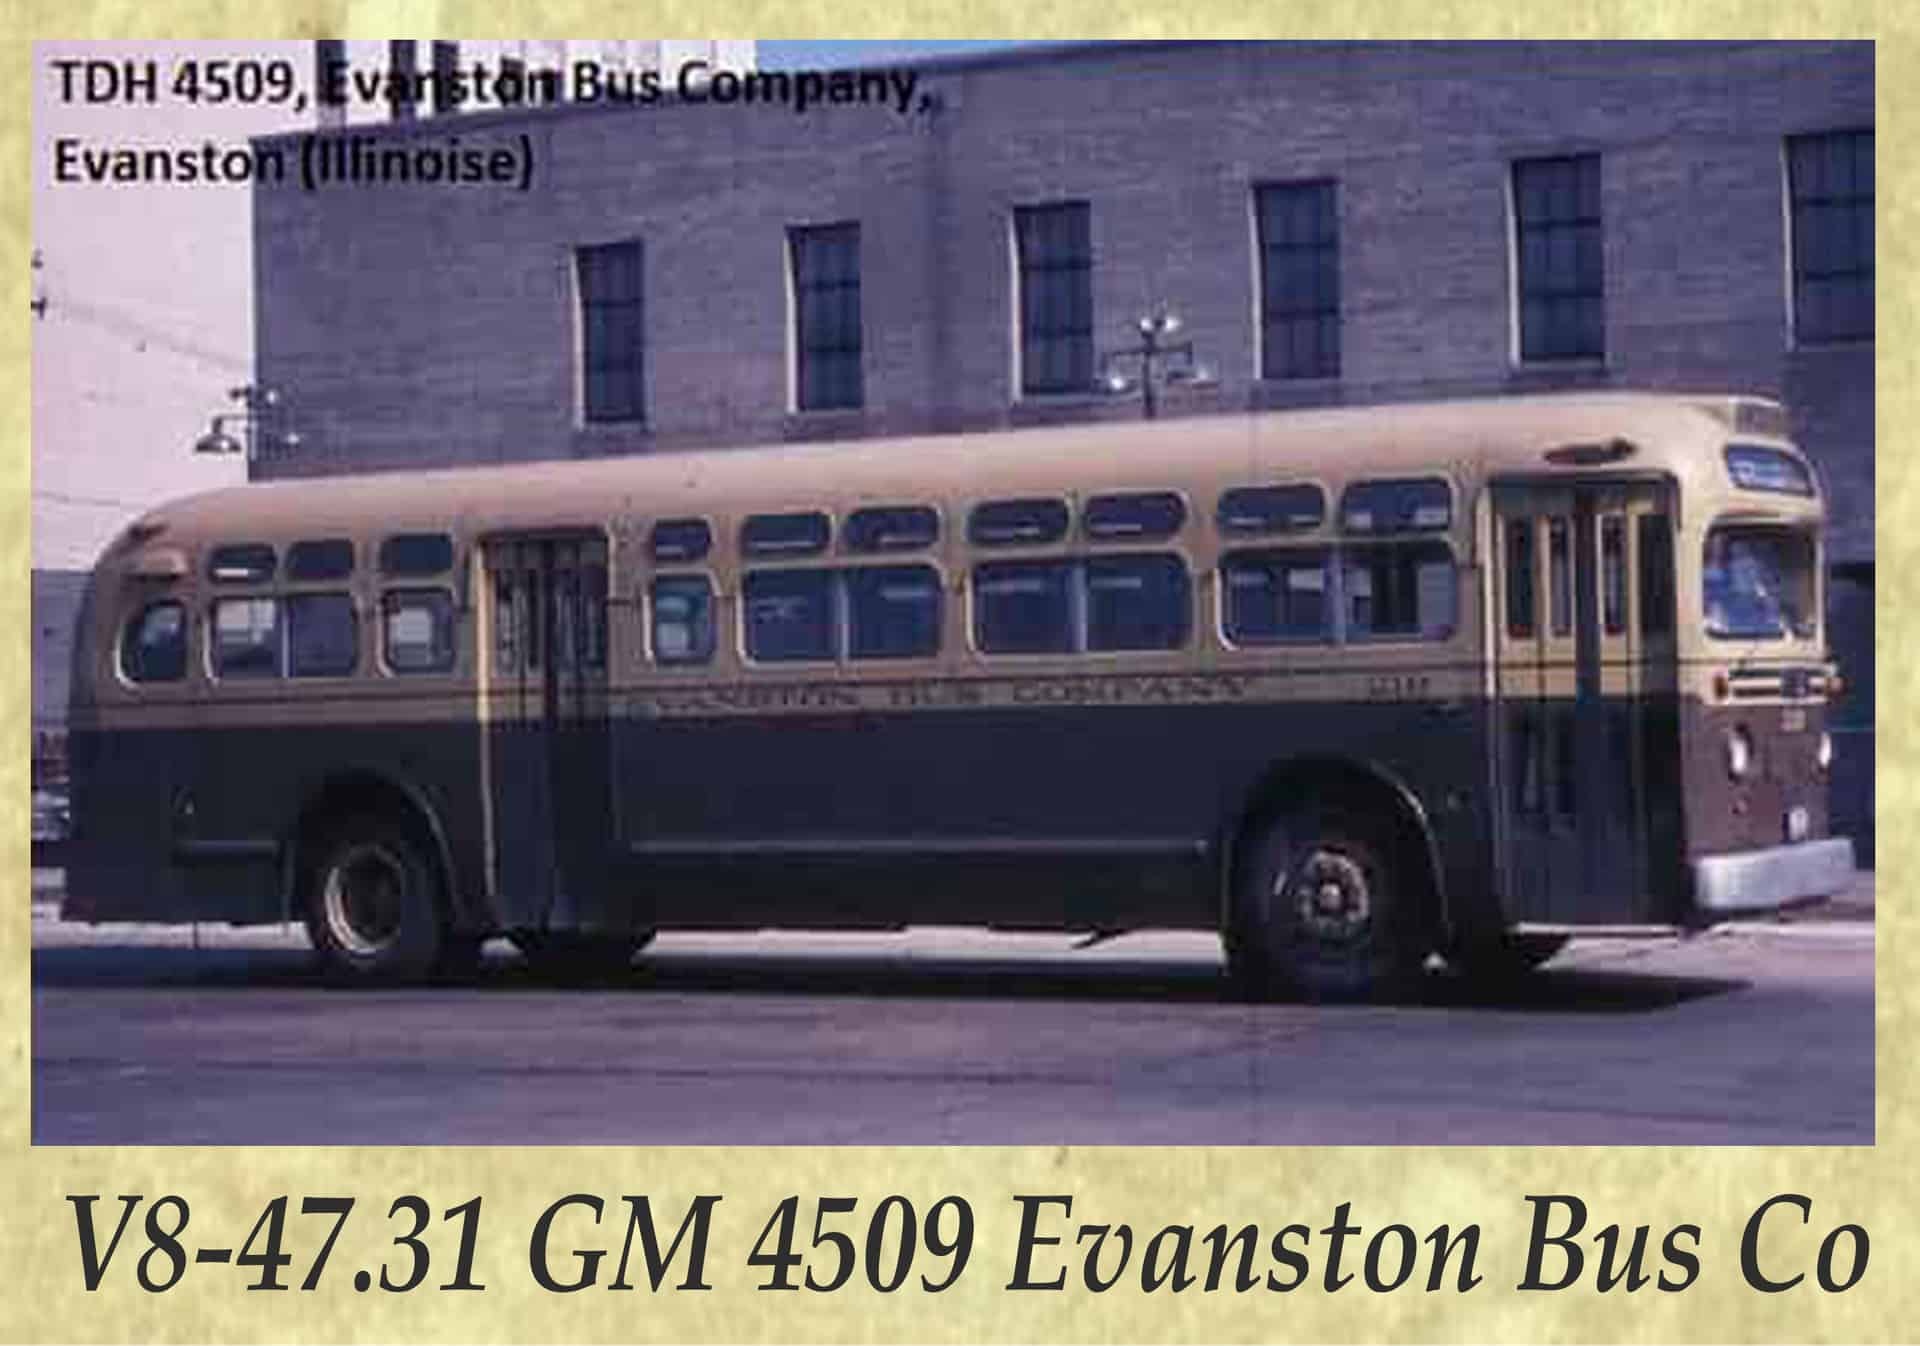 V8-47.31 GM 4509 Evanston Bus Co